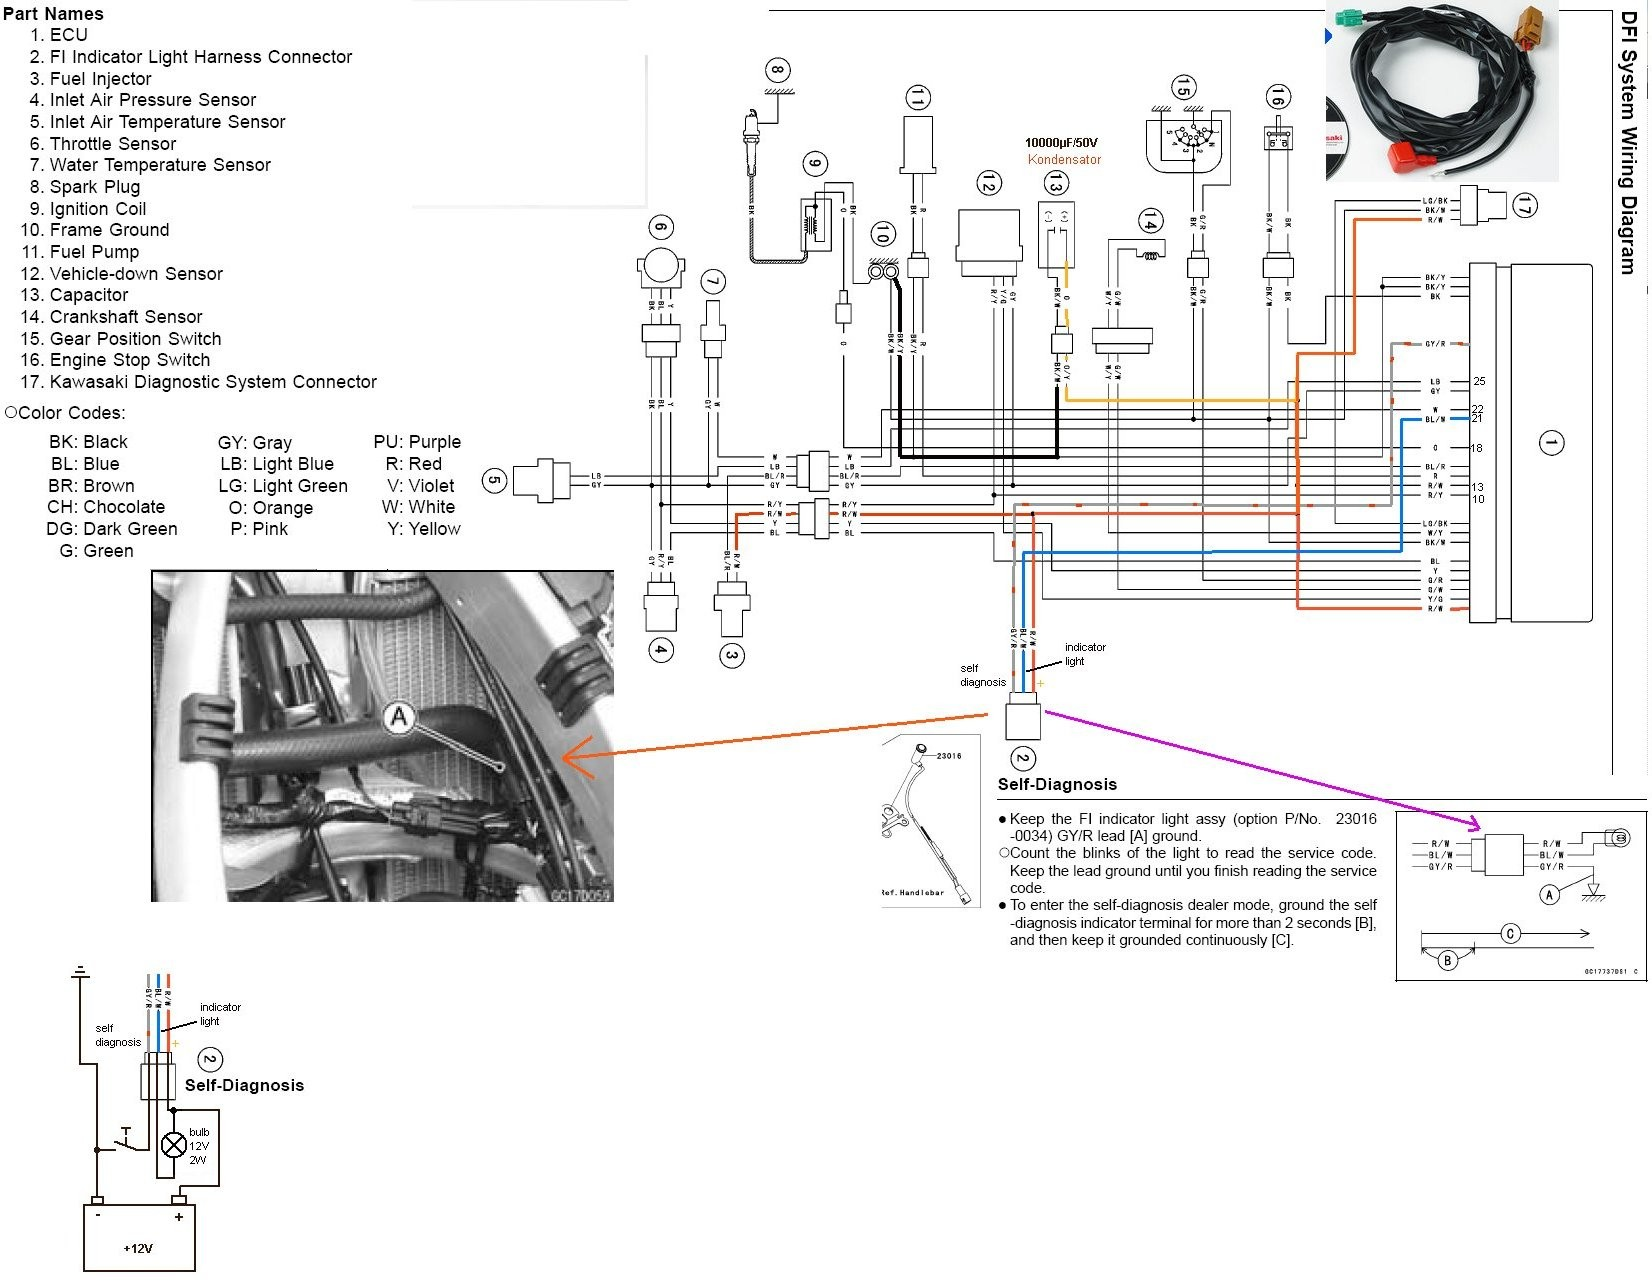 Kx 250 Engine Diagram Fi Diagnose Of Kx 250 Engine Diagram